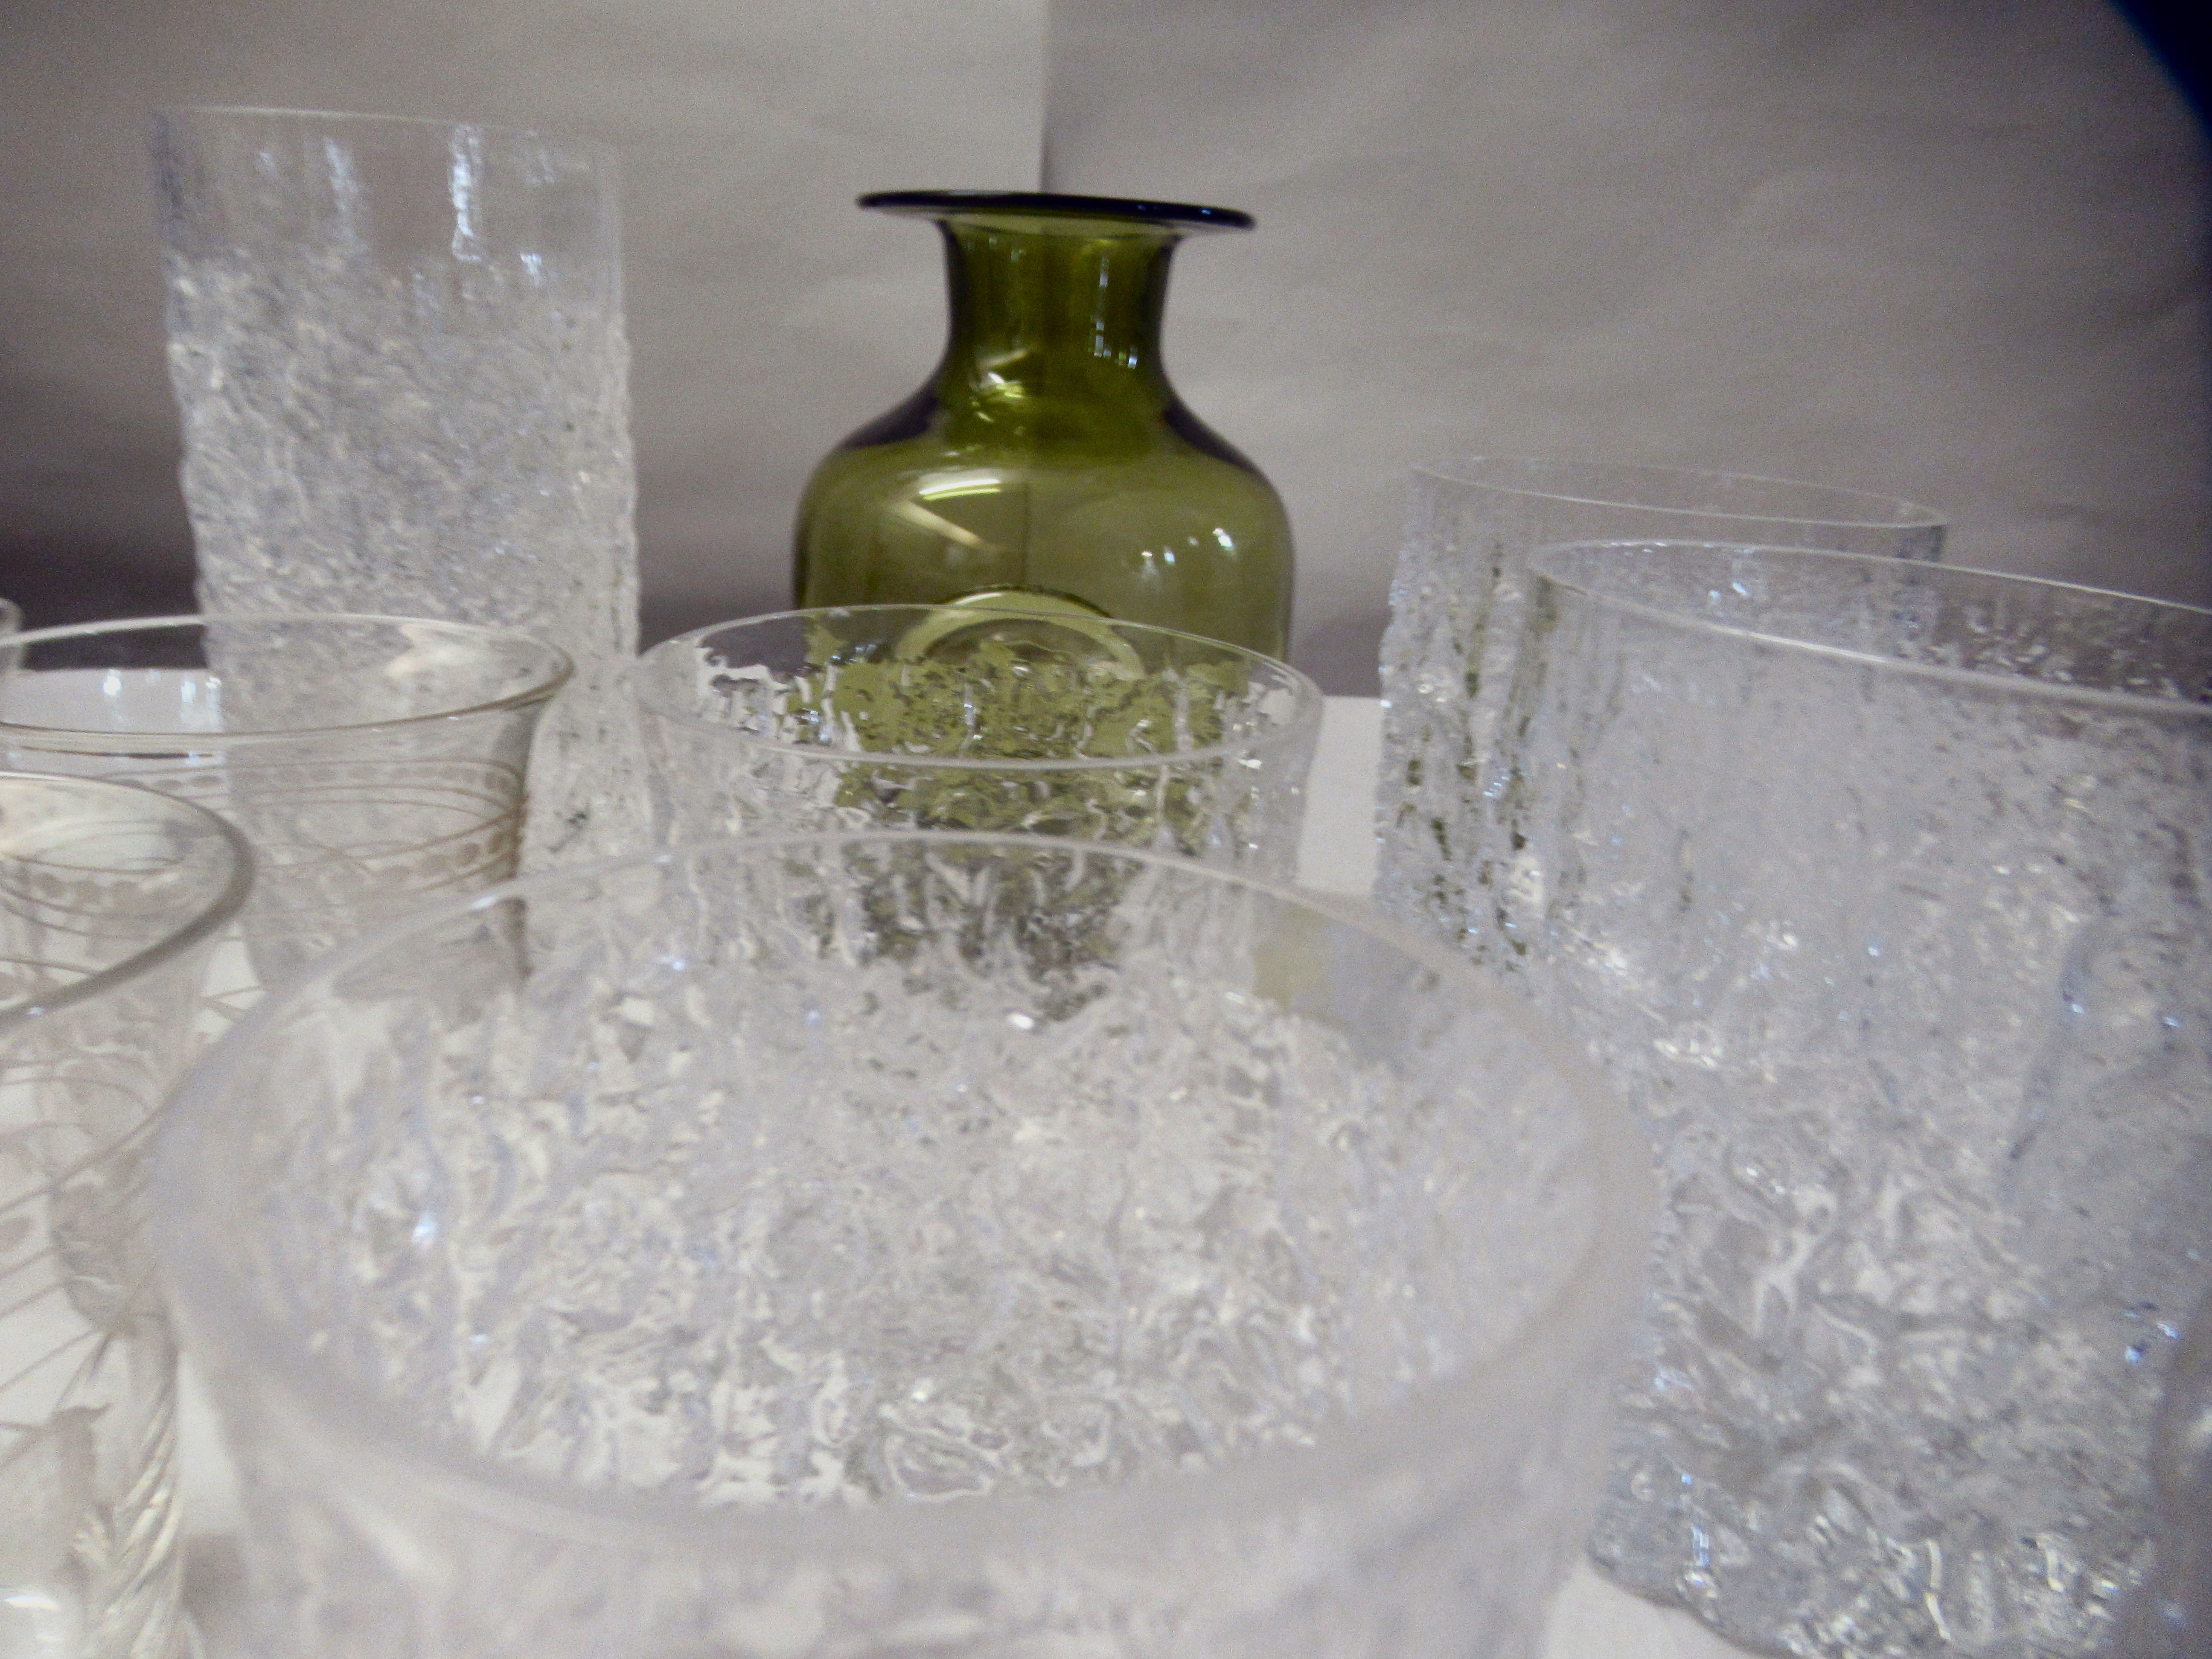 Bark effect Whitefriars cordial and other drinking glasses - Image 3 of 6